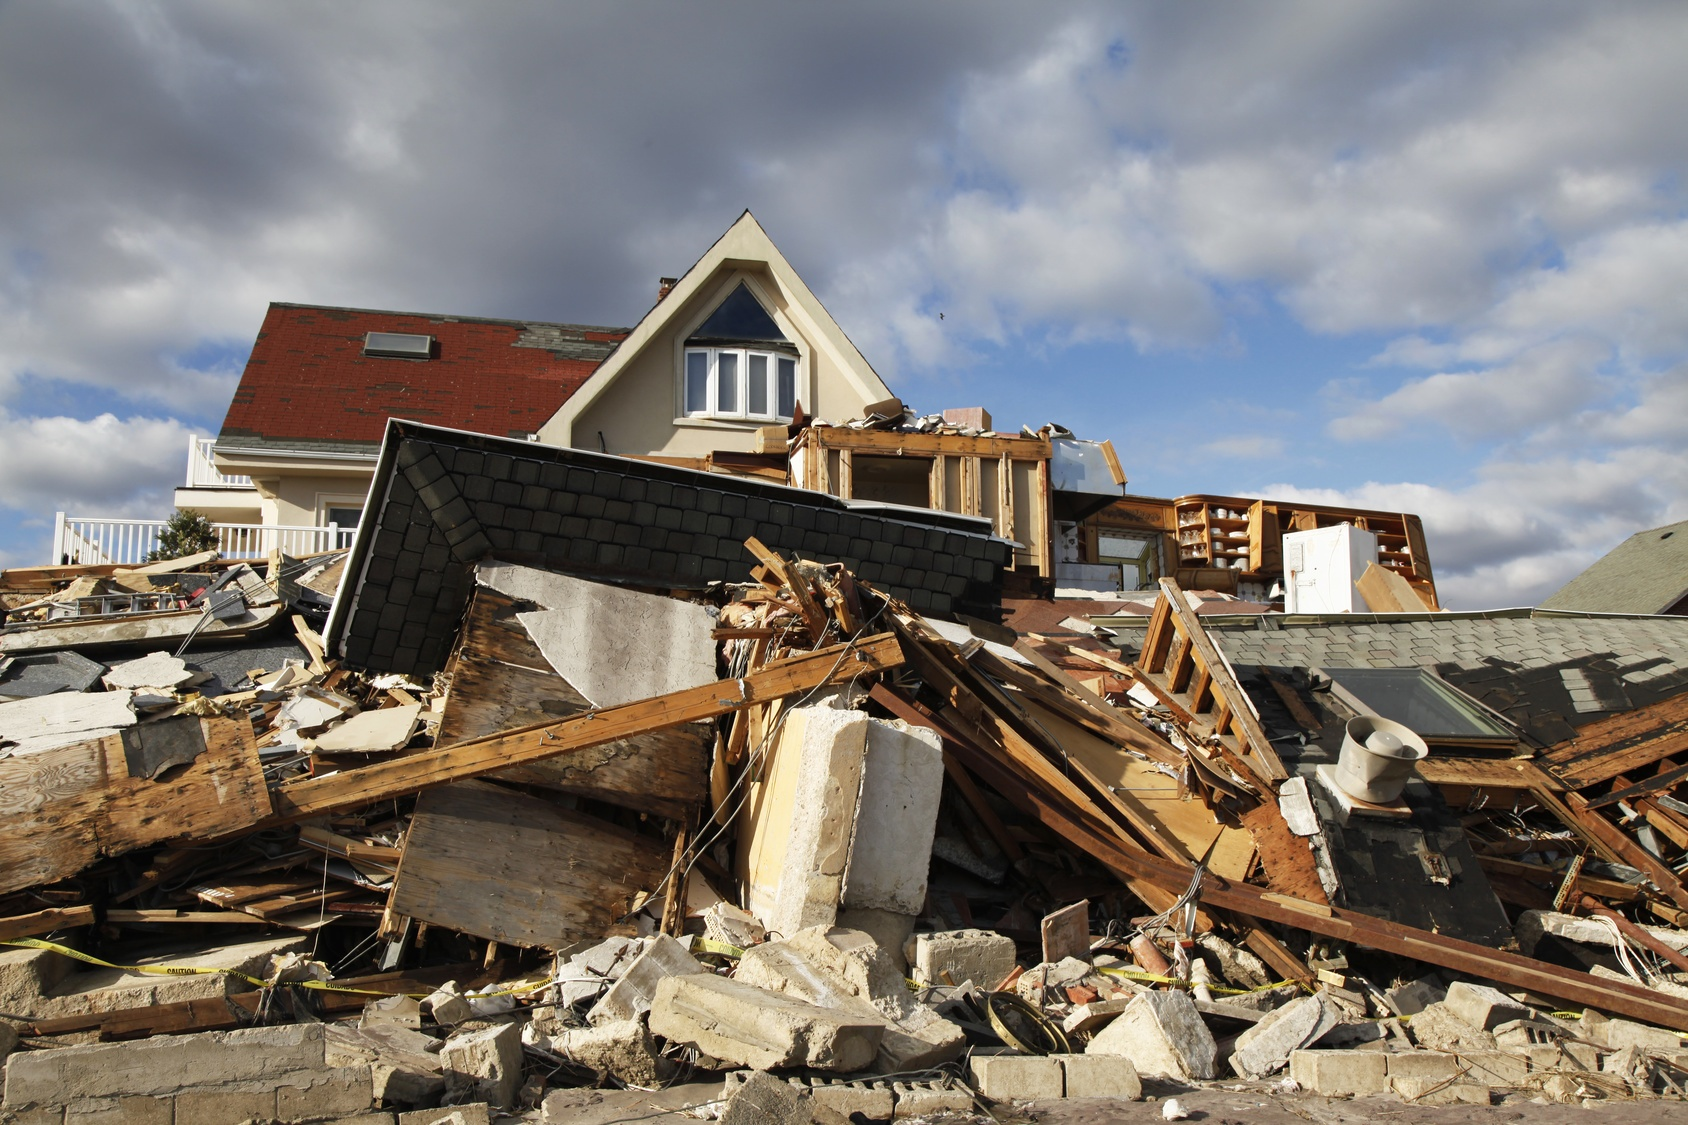 Potential-Environmental-Concerns-to-Watch-for-After-a-Hurricane